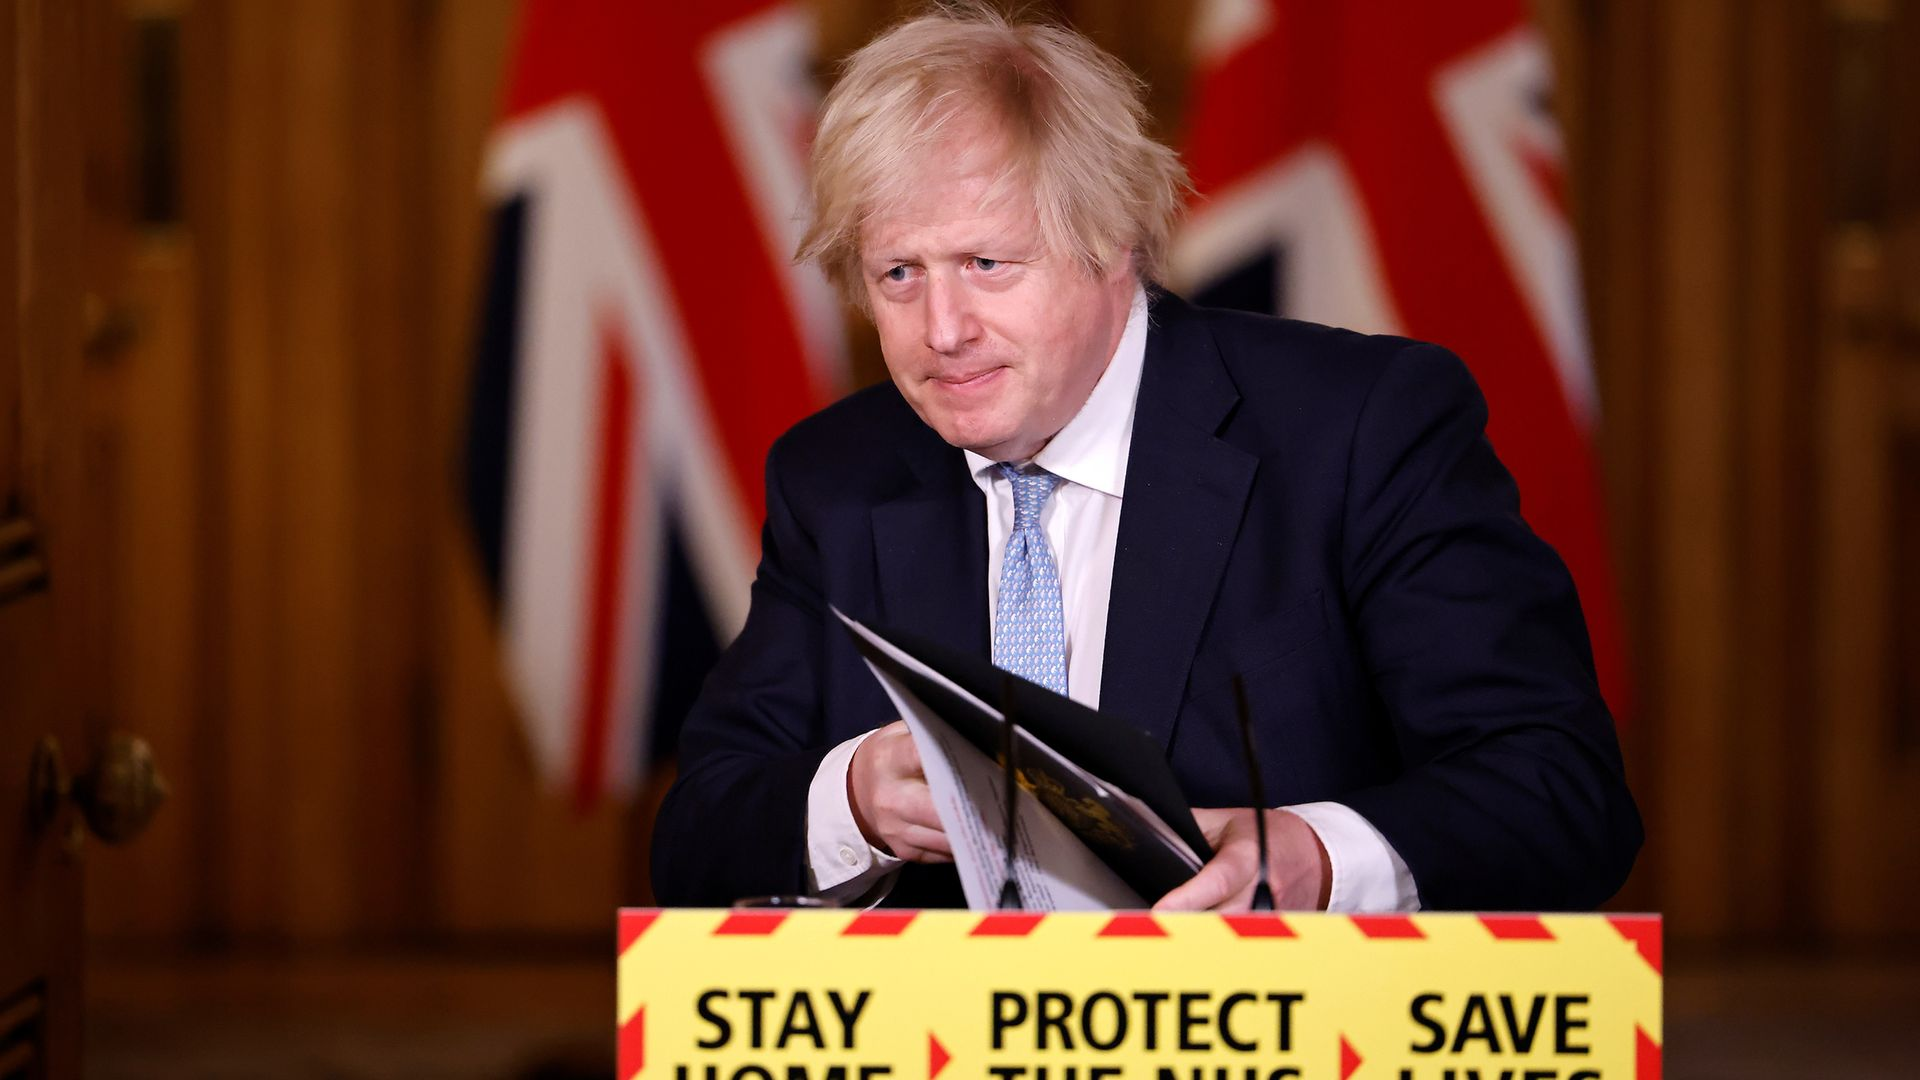 Prime minister Boris Johnson, during a media briefing in Downing Street, London, on coronavirus (Covid-19) - Credit: PA